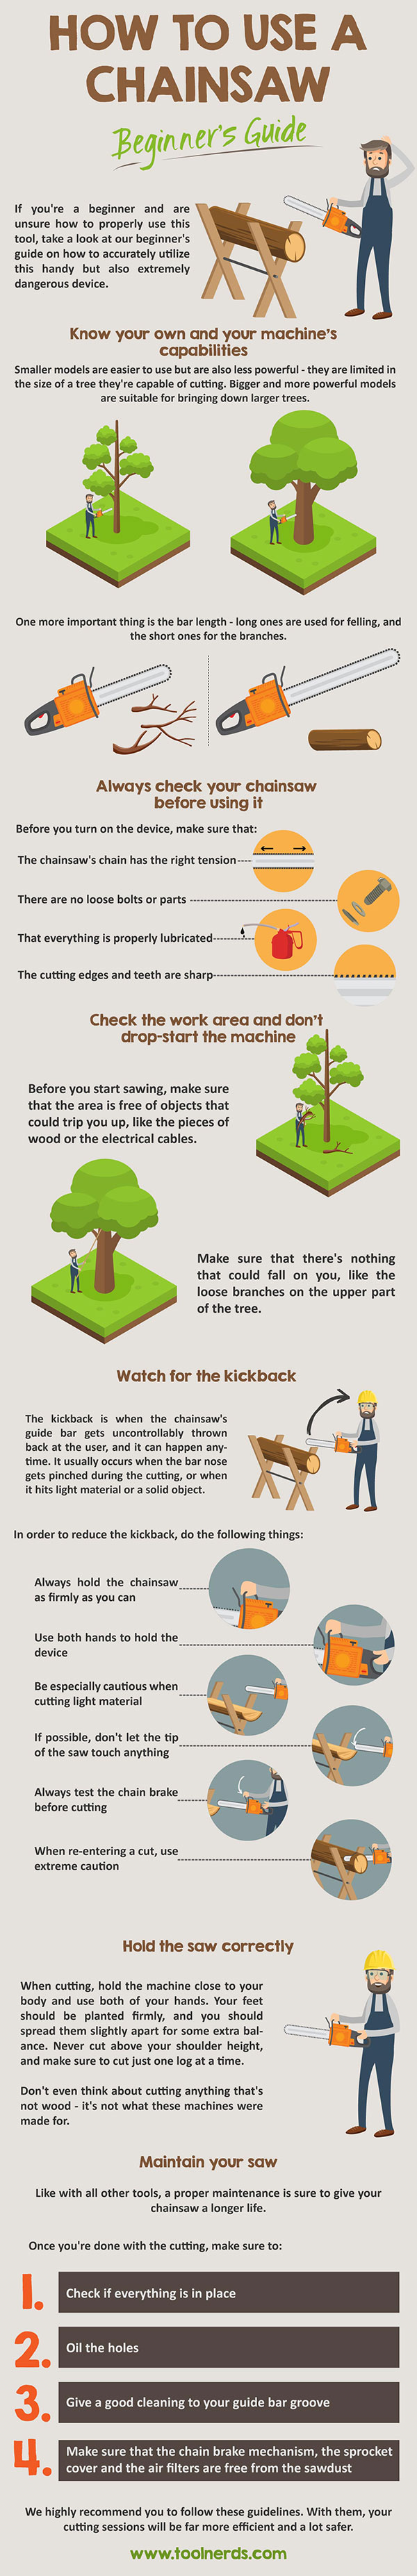 How to Use a Chainsaw - Beginner's Guide